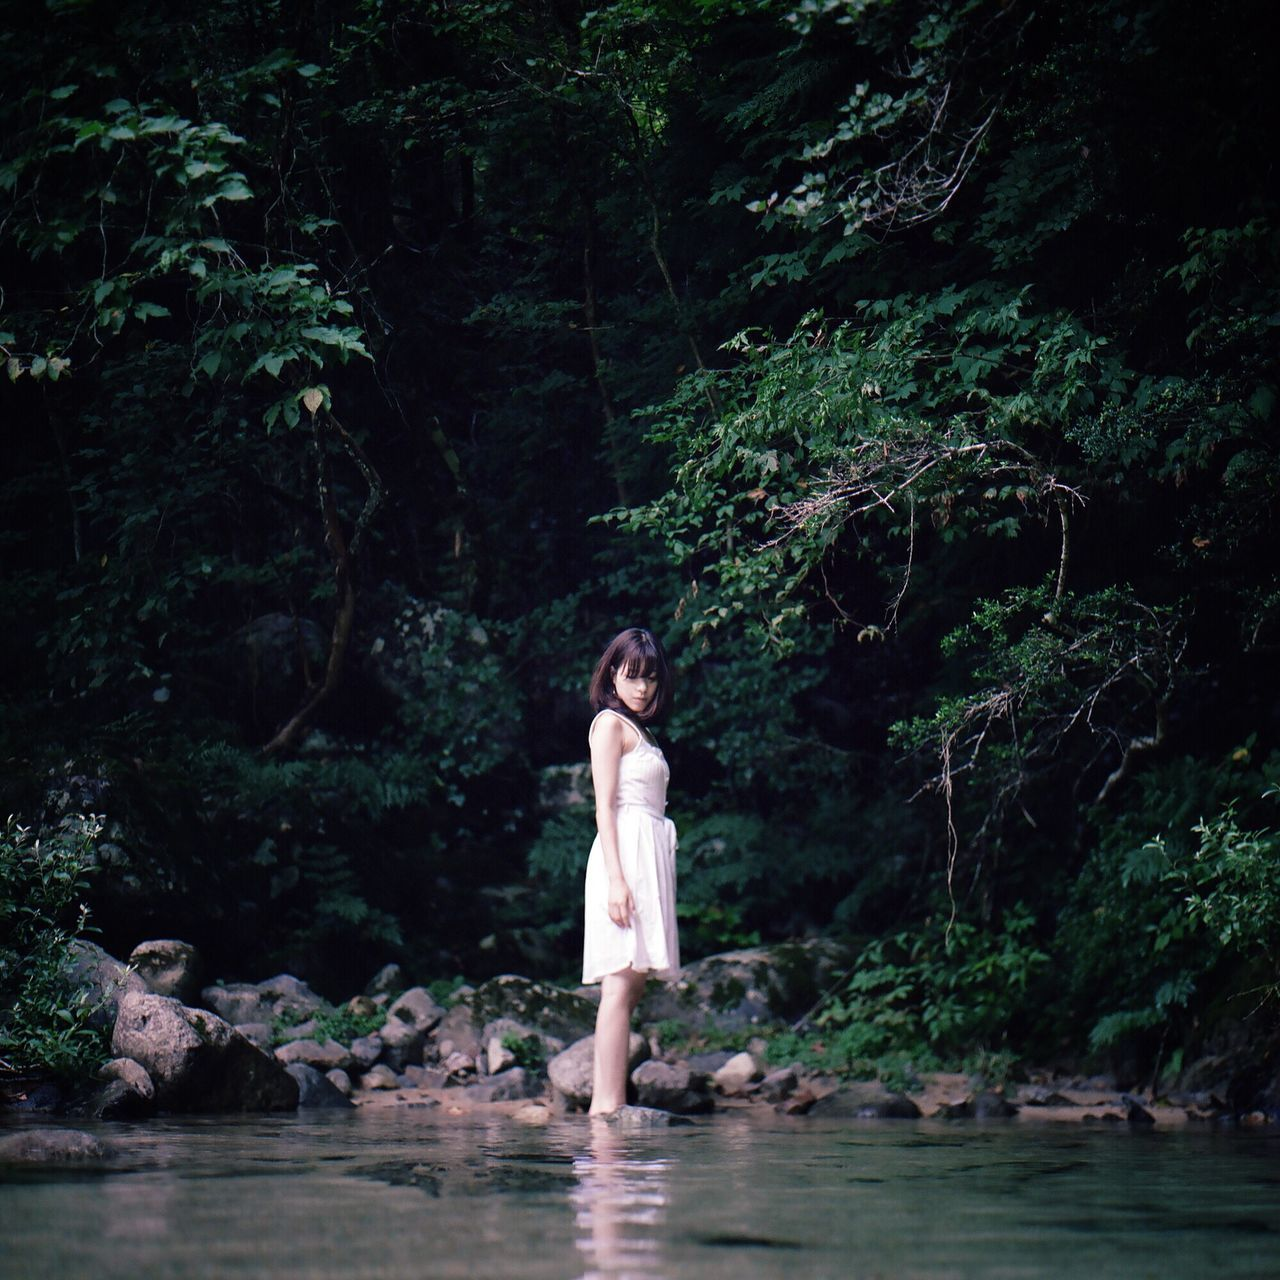 one person, real people, water, full length, tree, standing, young adult, ankle deep in water, front view, outdoors, nature, waterfront, river, young women, leisure activity, forest, beautiful woman, day, plant, adult, people, adults only